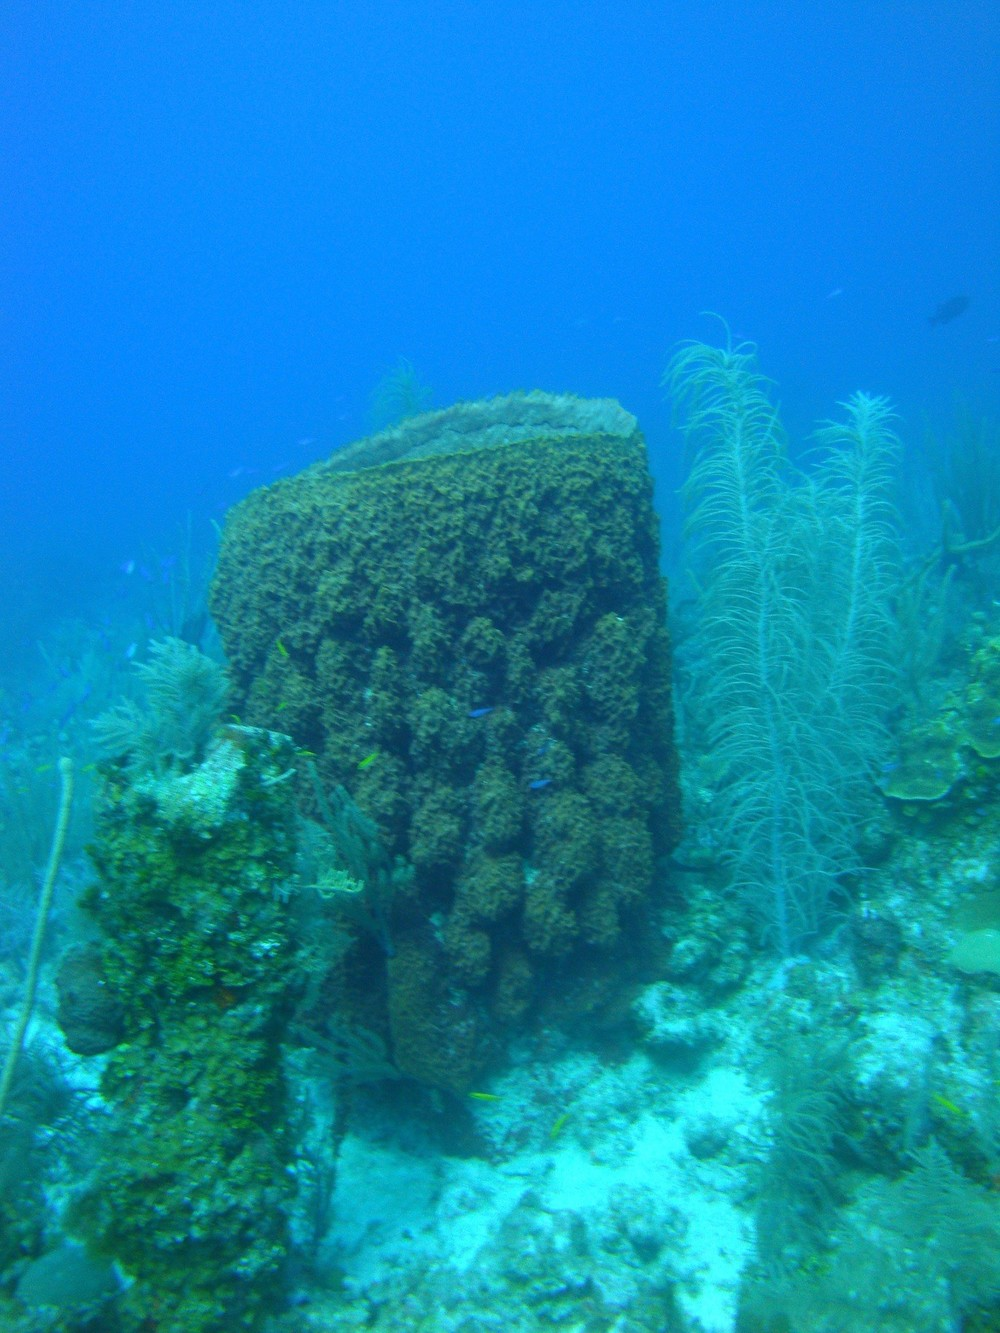 The above photo shows a giant barrel sponge,  Xestospongia muta , in the center of the image on a coral reef near Little Cayman in the Caribbean. The sponge in this photo is about 5 ft tall! Next to the sponge are some soft corals and just in front of the sponge are several small colorful reef fish. Photo courtesy of Cara Fiore.